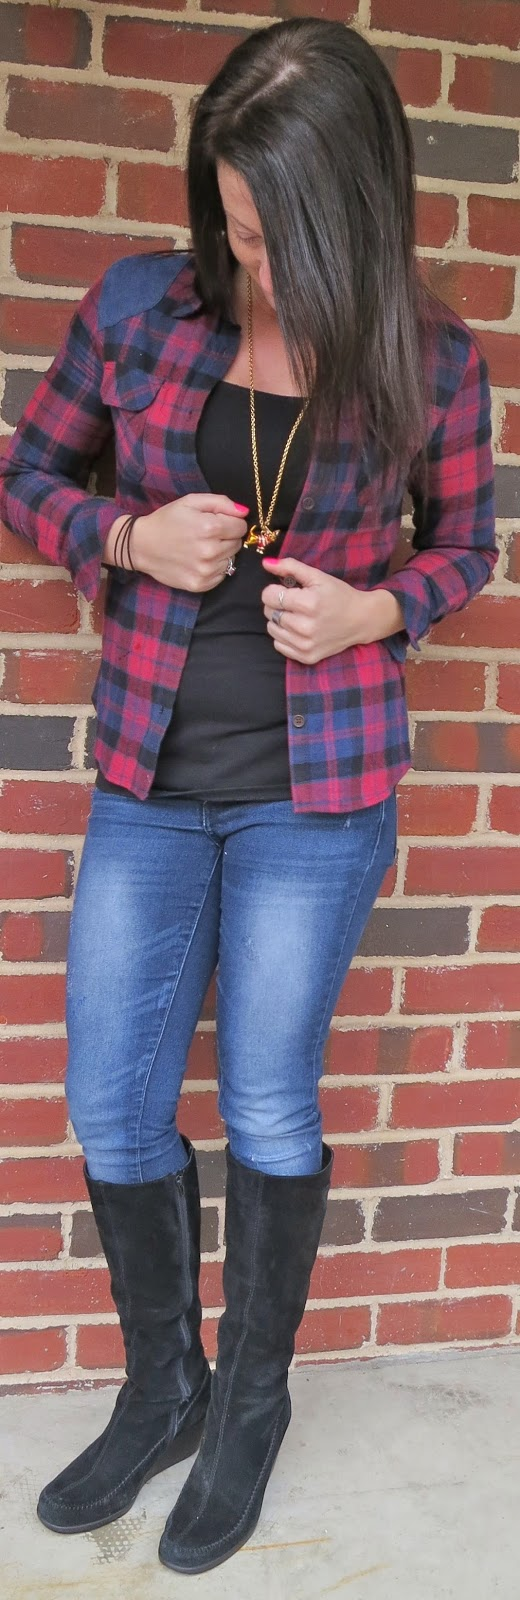 plaid blouse, skinny jeans, flannel, outfit, fashion